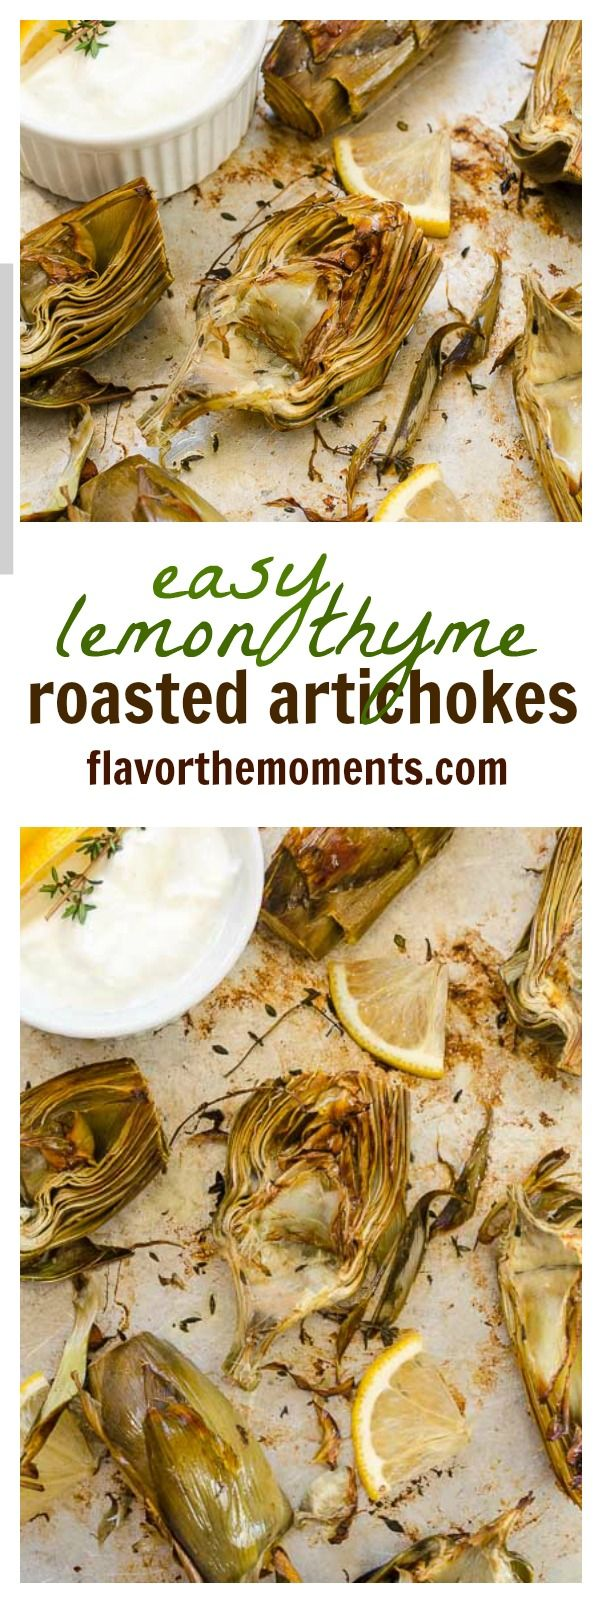 Easy Lemon Thyme Roasted Artichokes are tender oven roasted artichokes with simple instructions on how to prep artichokes. Serve with light lemon garlic parmesan Greek yogurt dip for the perfect spring appetizer! @FlavortheMoment